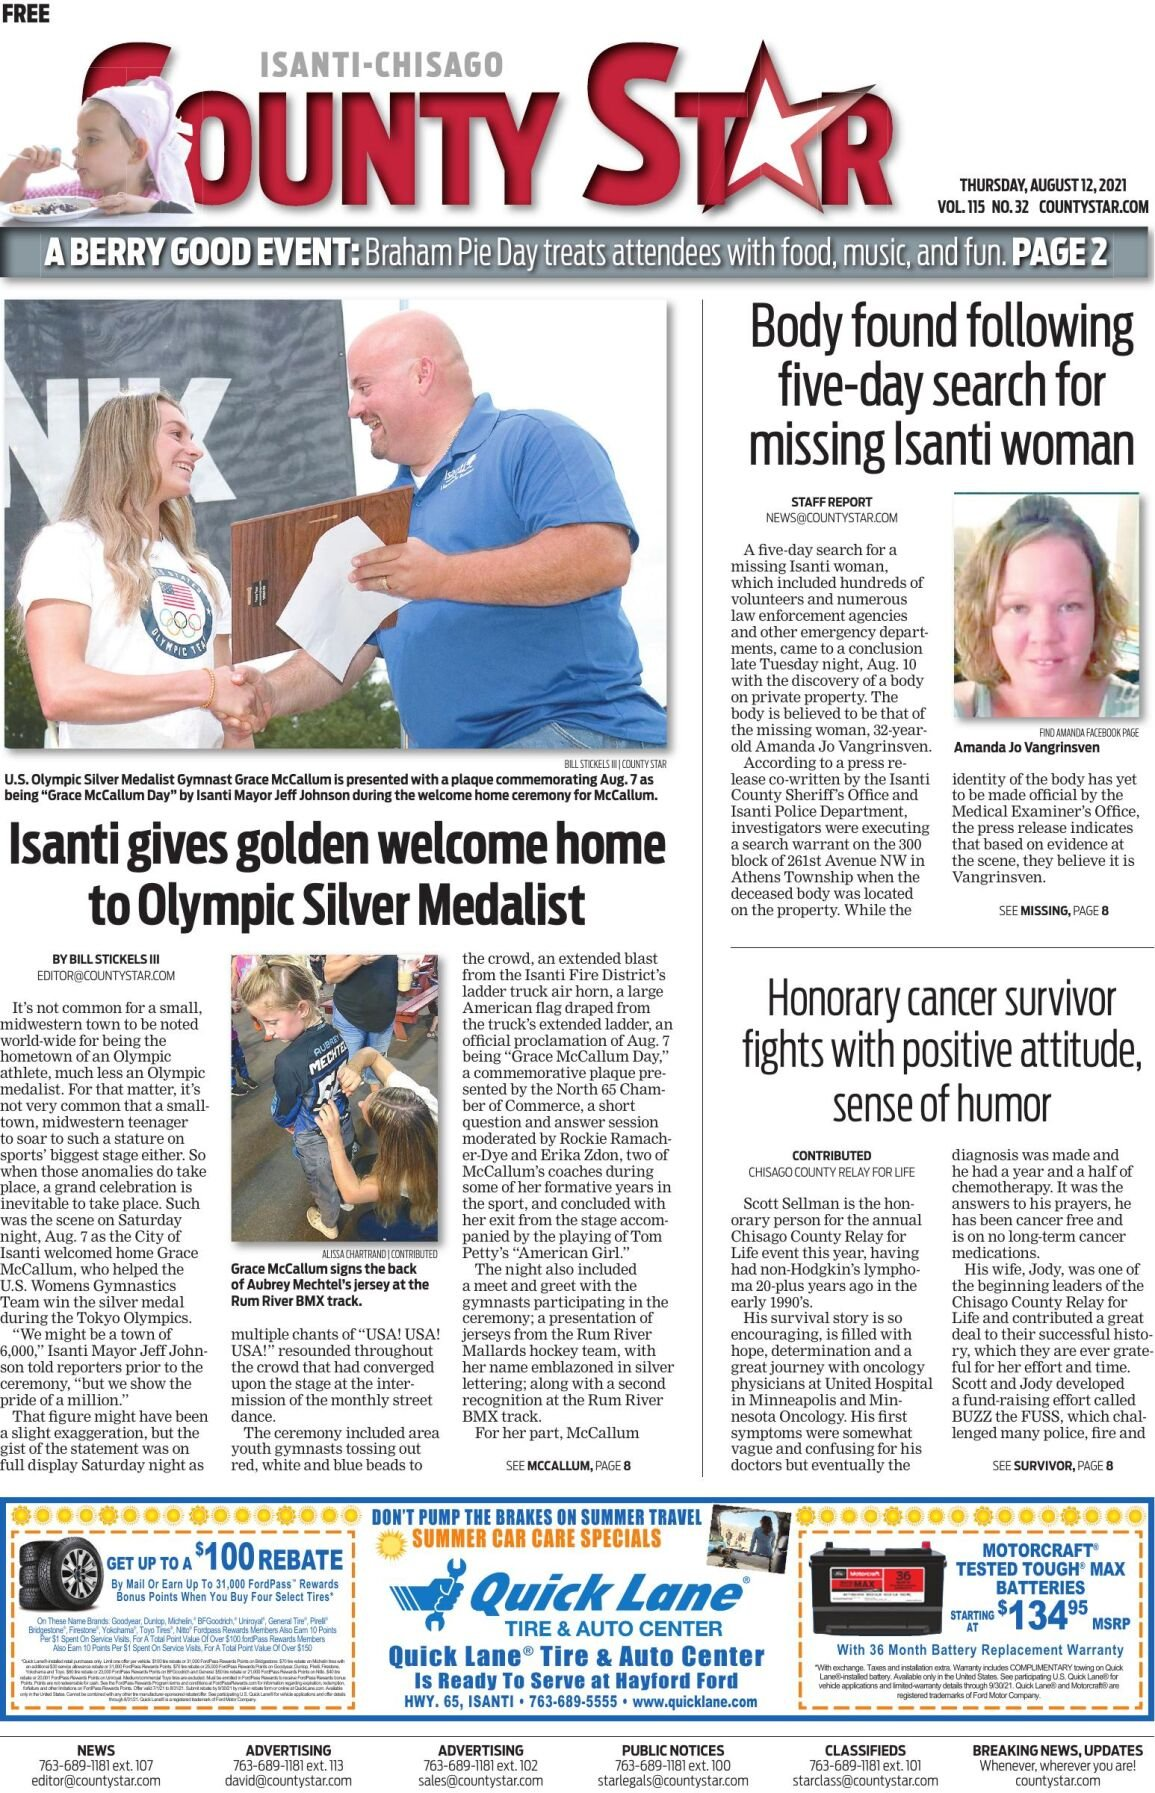 Isanti-Chisago County Star August 12, 2021 e-edition